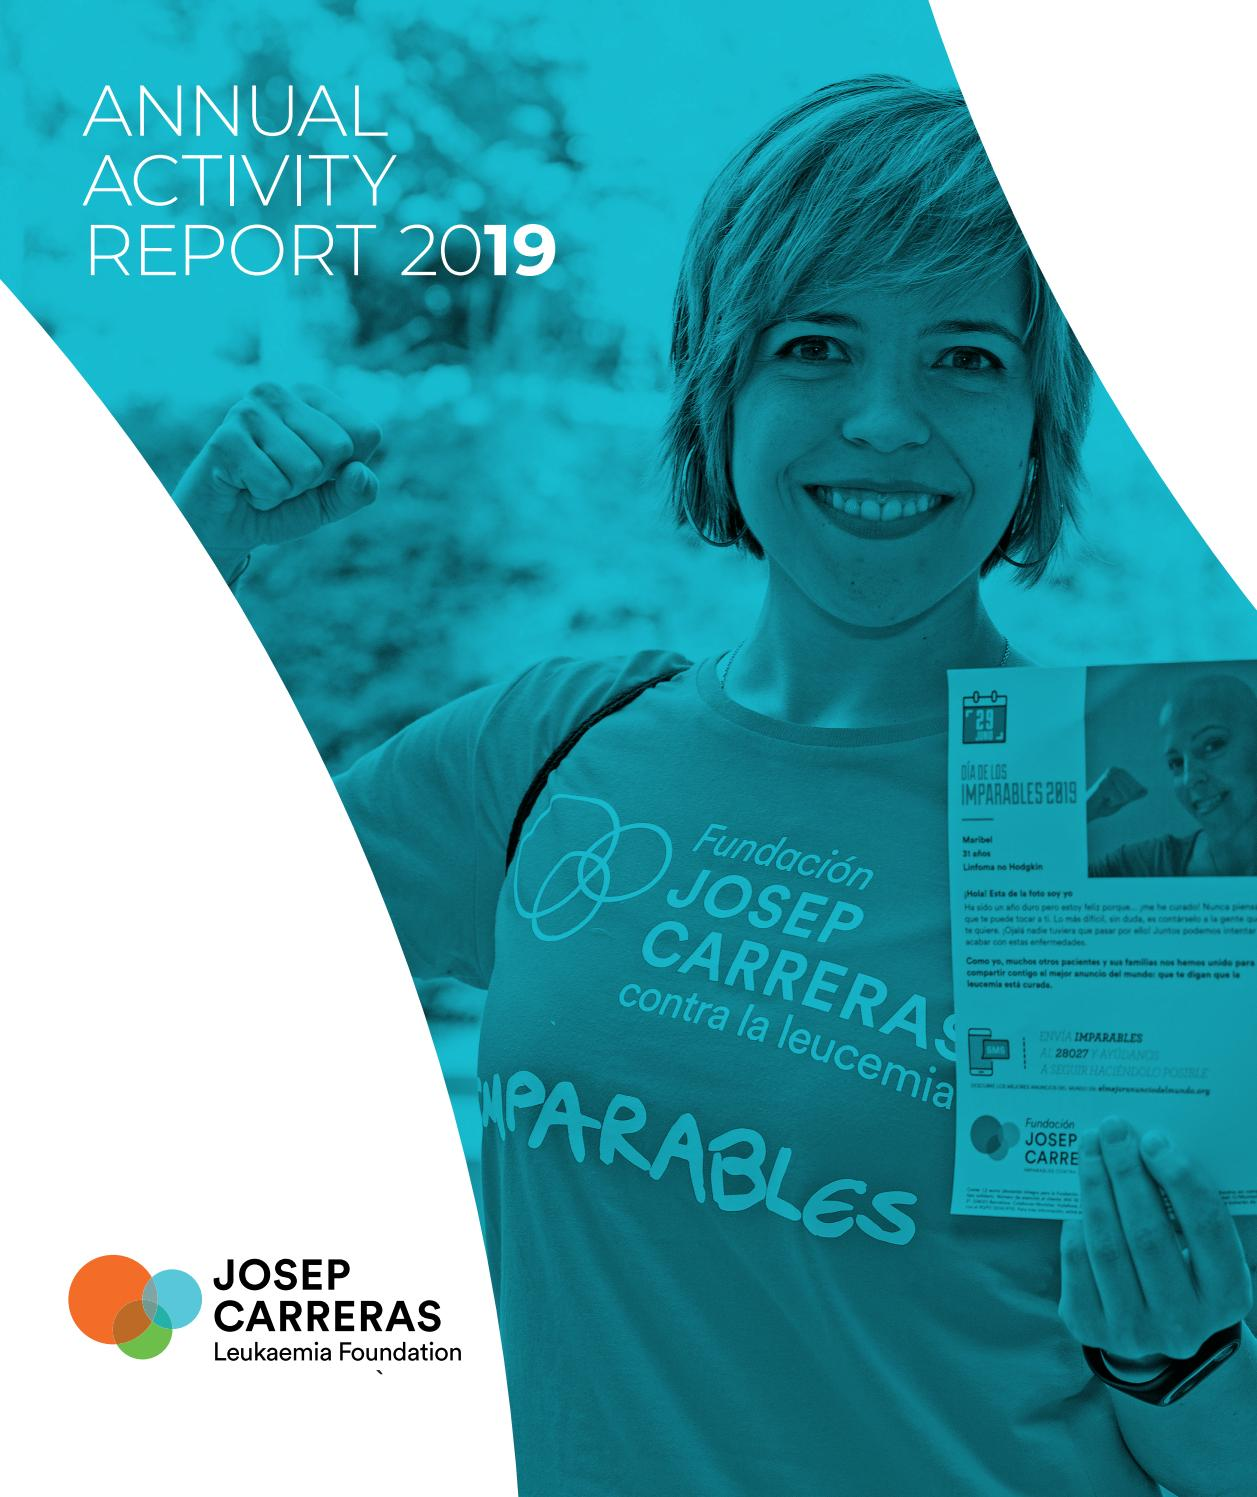 Annual Activity Report 2019 By Fundación Josep Carreras Contra La Leucemia José Carreras Leukaemia Foundation Issuu